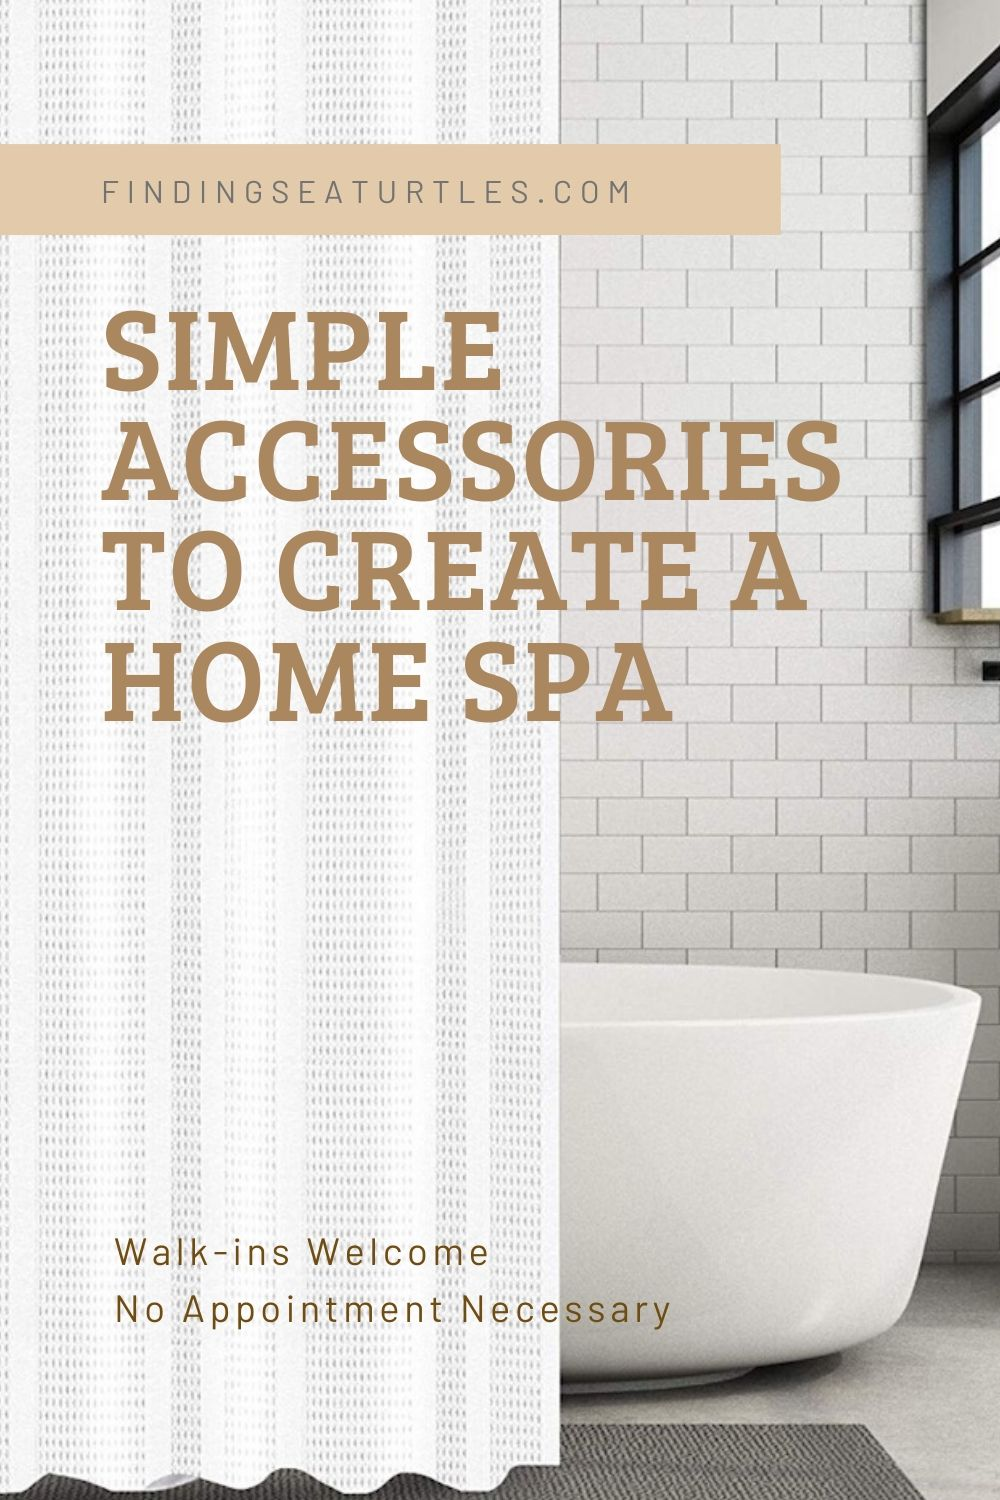 Simple Accessories to Create a Home Spa Walk ins Welcome #Spa #bathroom #HomeSpa #PamperYourself #SpaAccessories #MeTime #BathSpa #DIYHomeSpa #Relax #Soothing